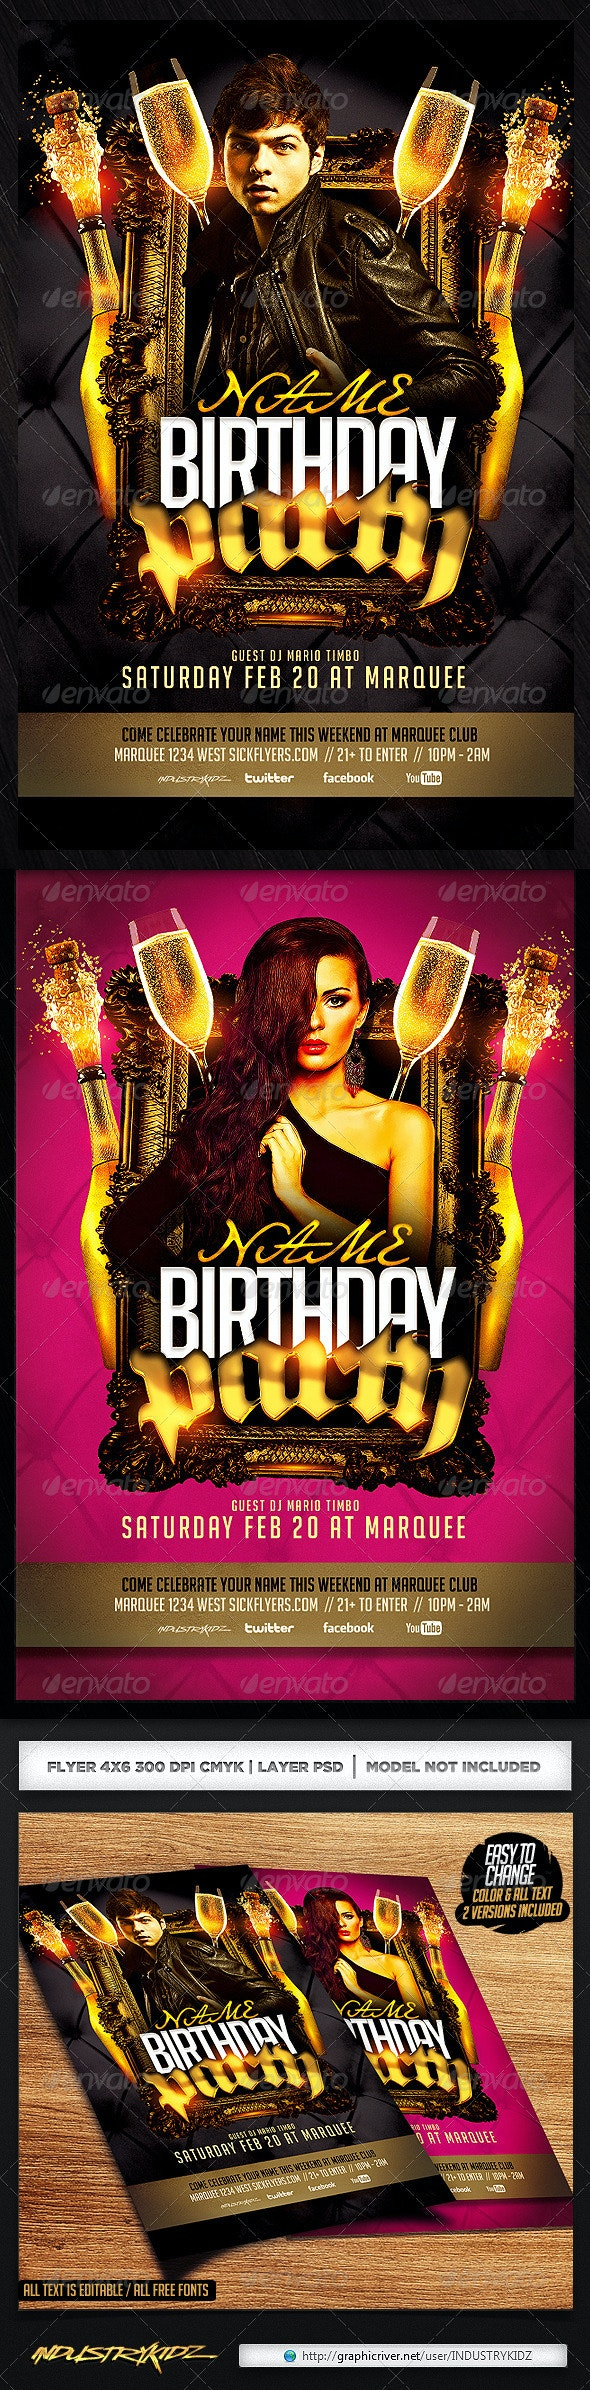 Birthday/Bachelor Party Flyer Template - Clubs & Parties Events